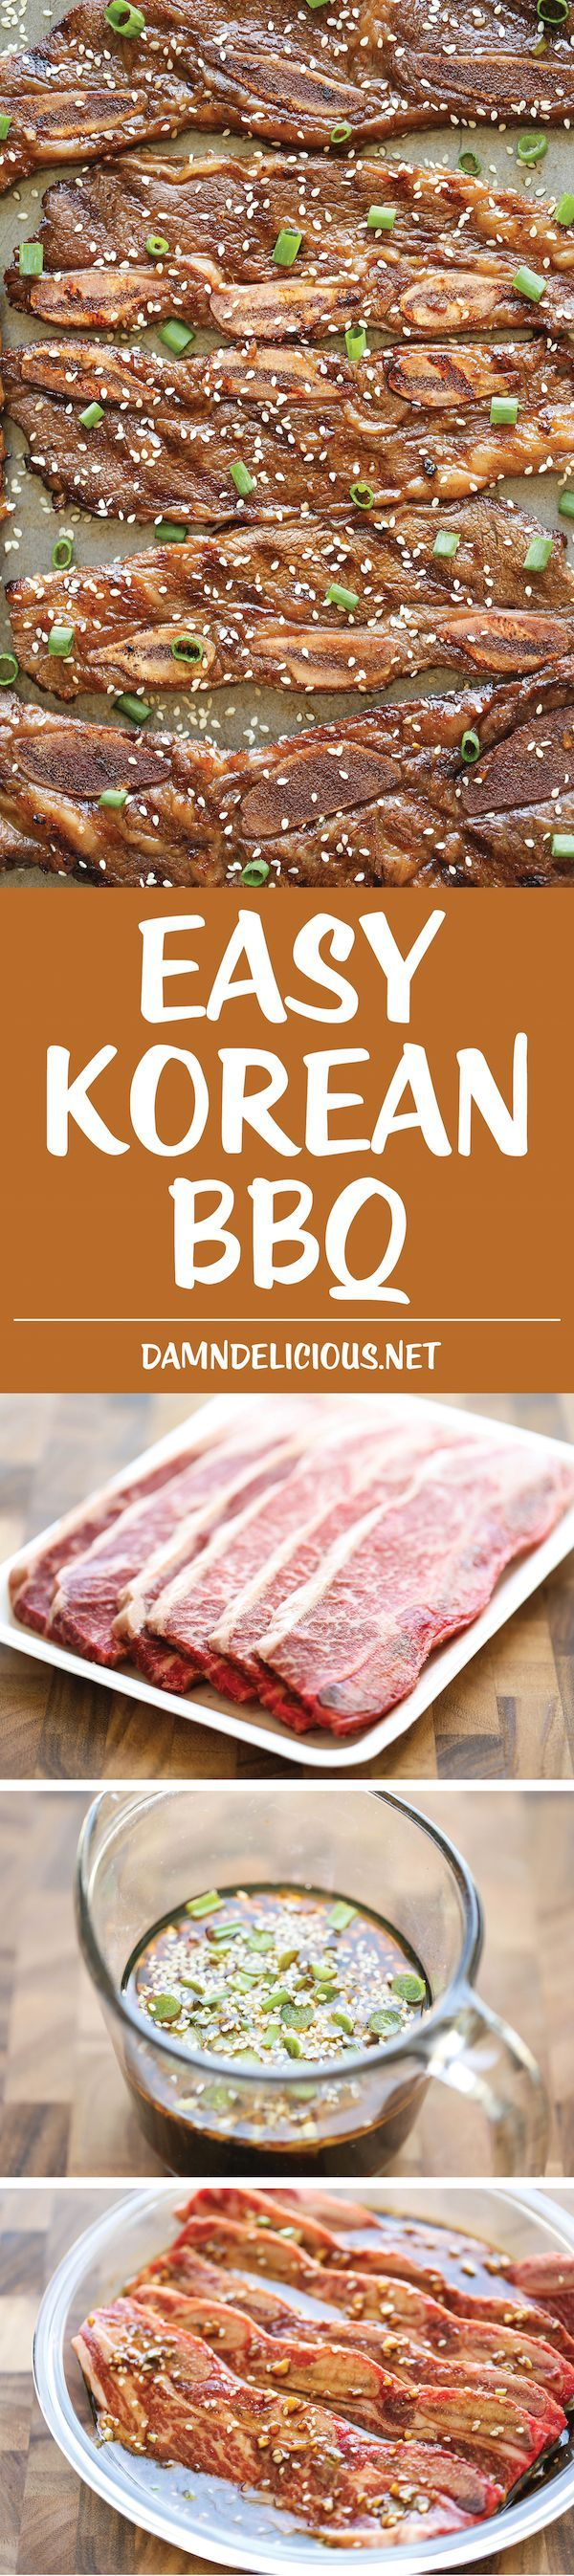 Easy Korean BBQ - When a recipe calls for mirin, the Japanese sweet rice wine, you need a combination of acidic and sweet flavors. Add between 1 and 2 tablespoons of sugar to 1/2 cup of white wine, vermouth, or dry sherry to replace 1/2 cup of mirin.